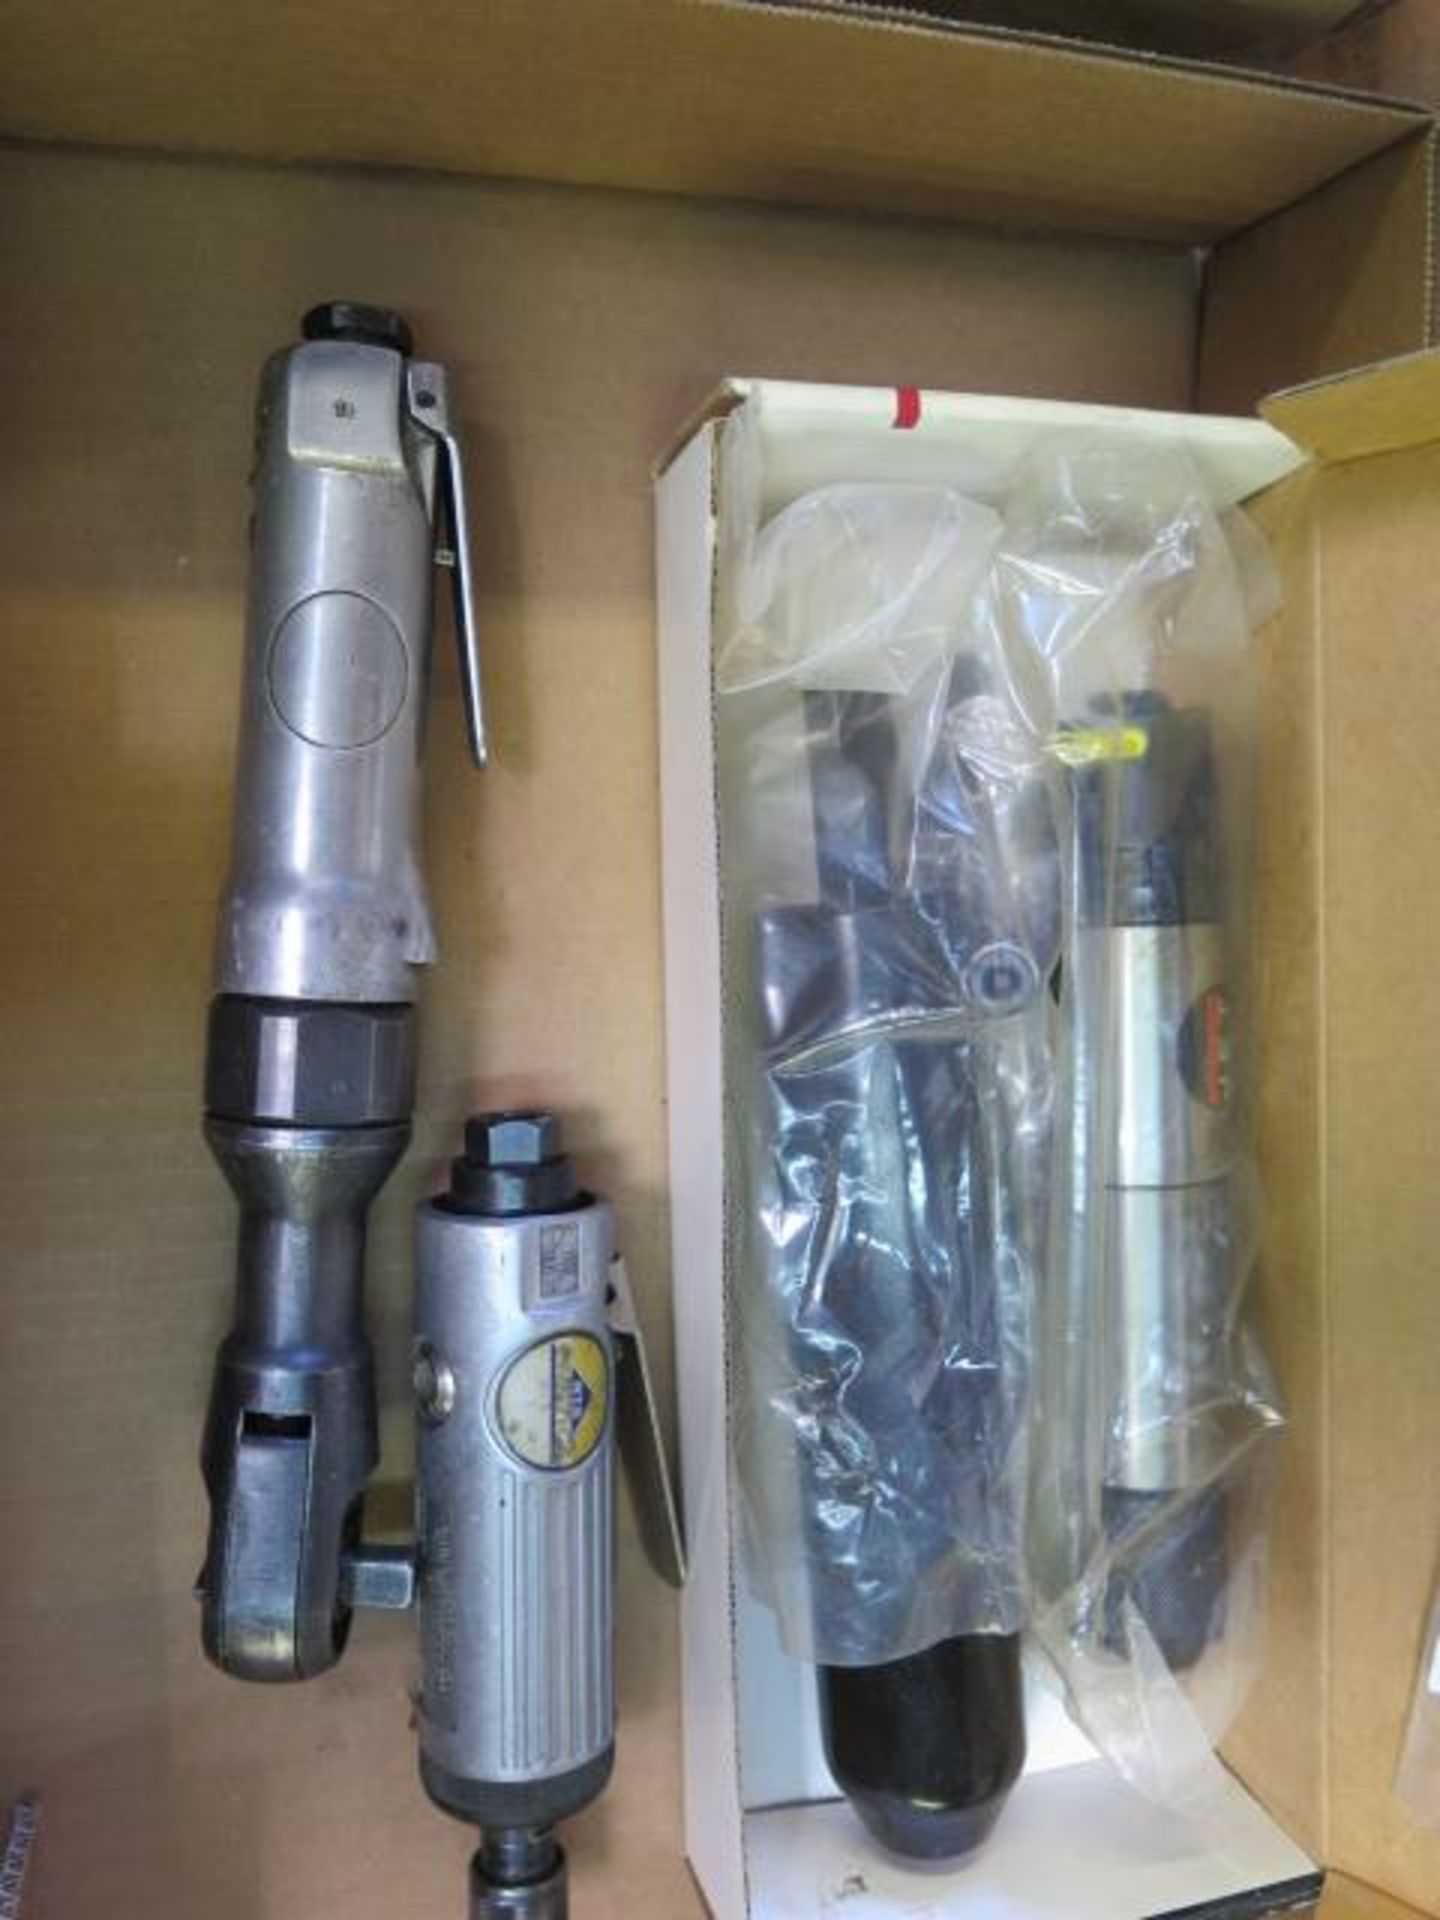 Lot 10 - Pneumatic Scaler, Pin Grinder and Ratchet Wrench (SOLD AS-IS - NO WARRANTY)